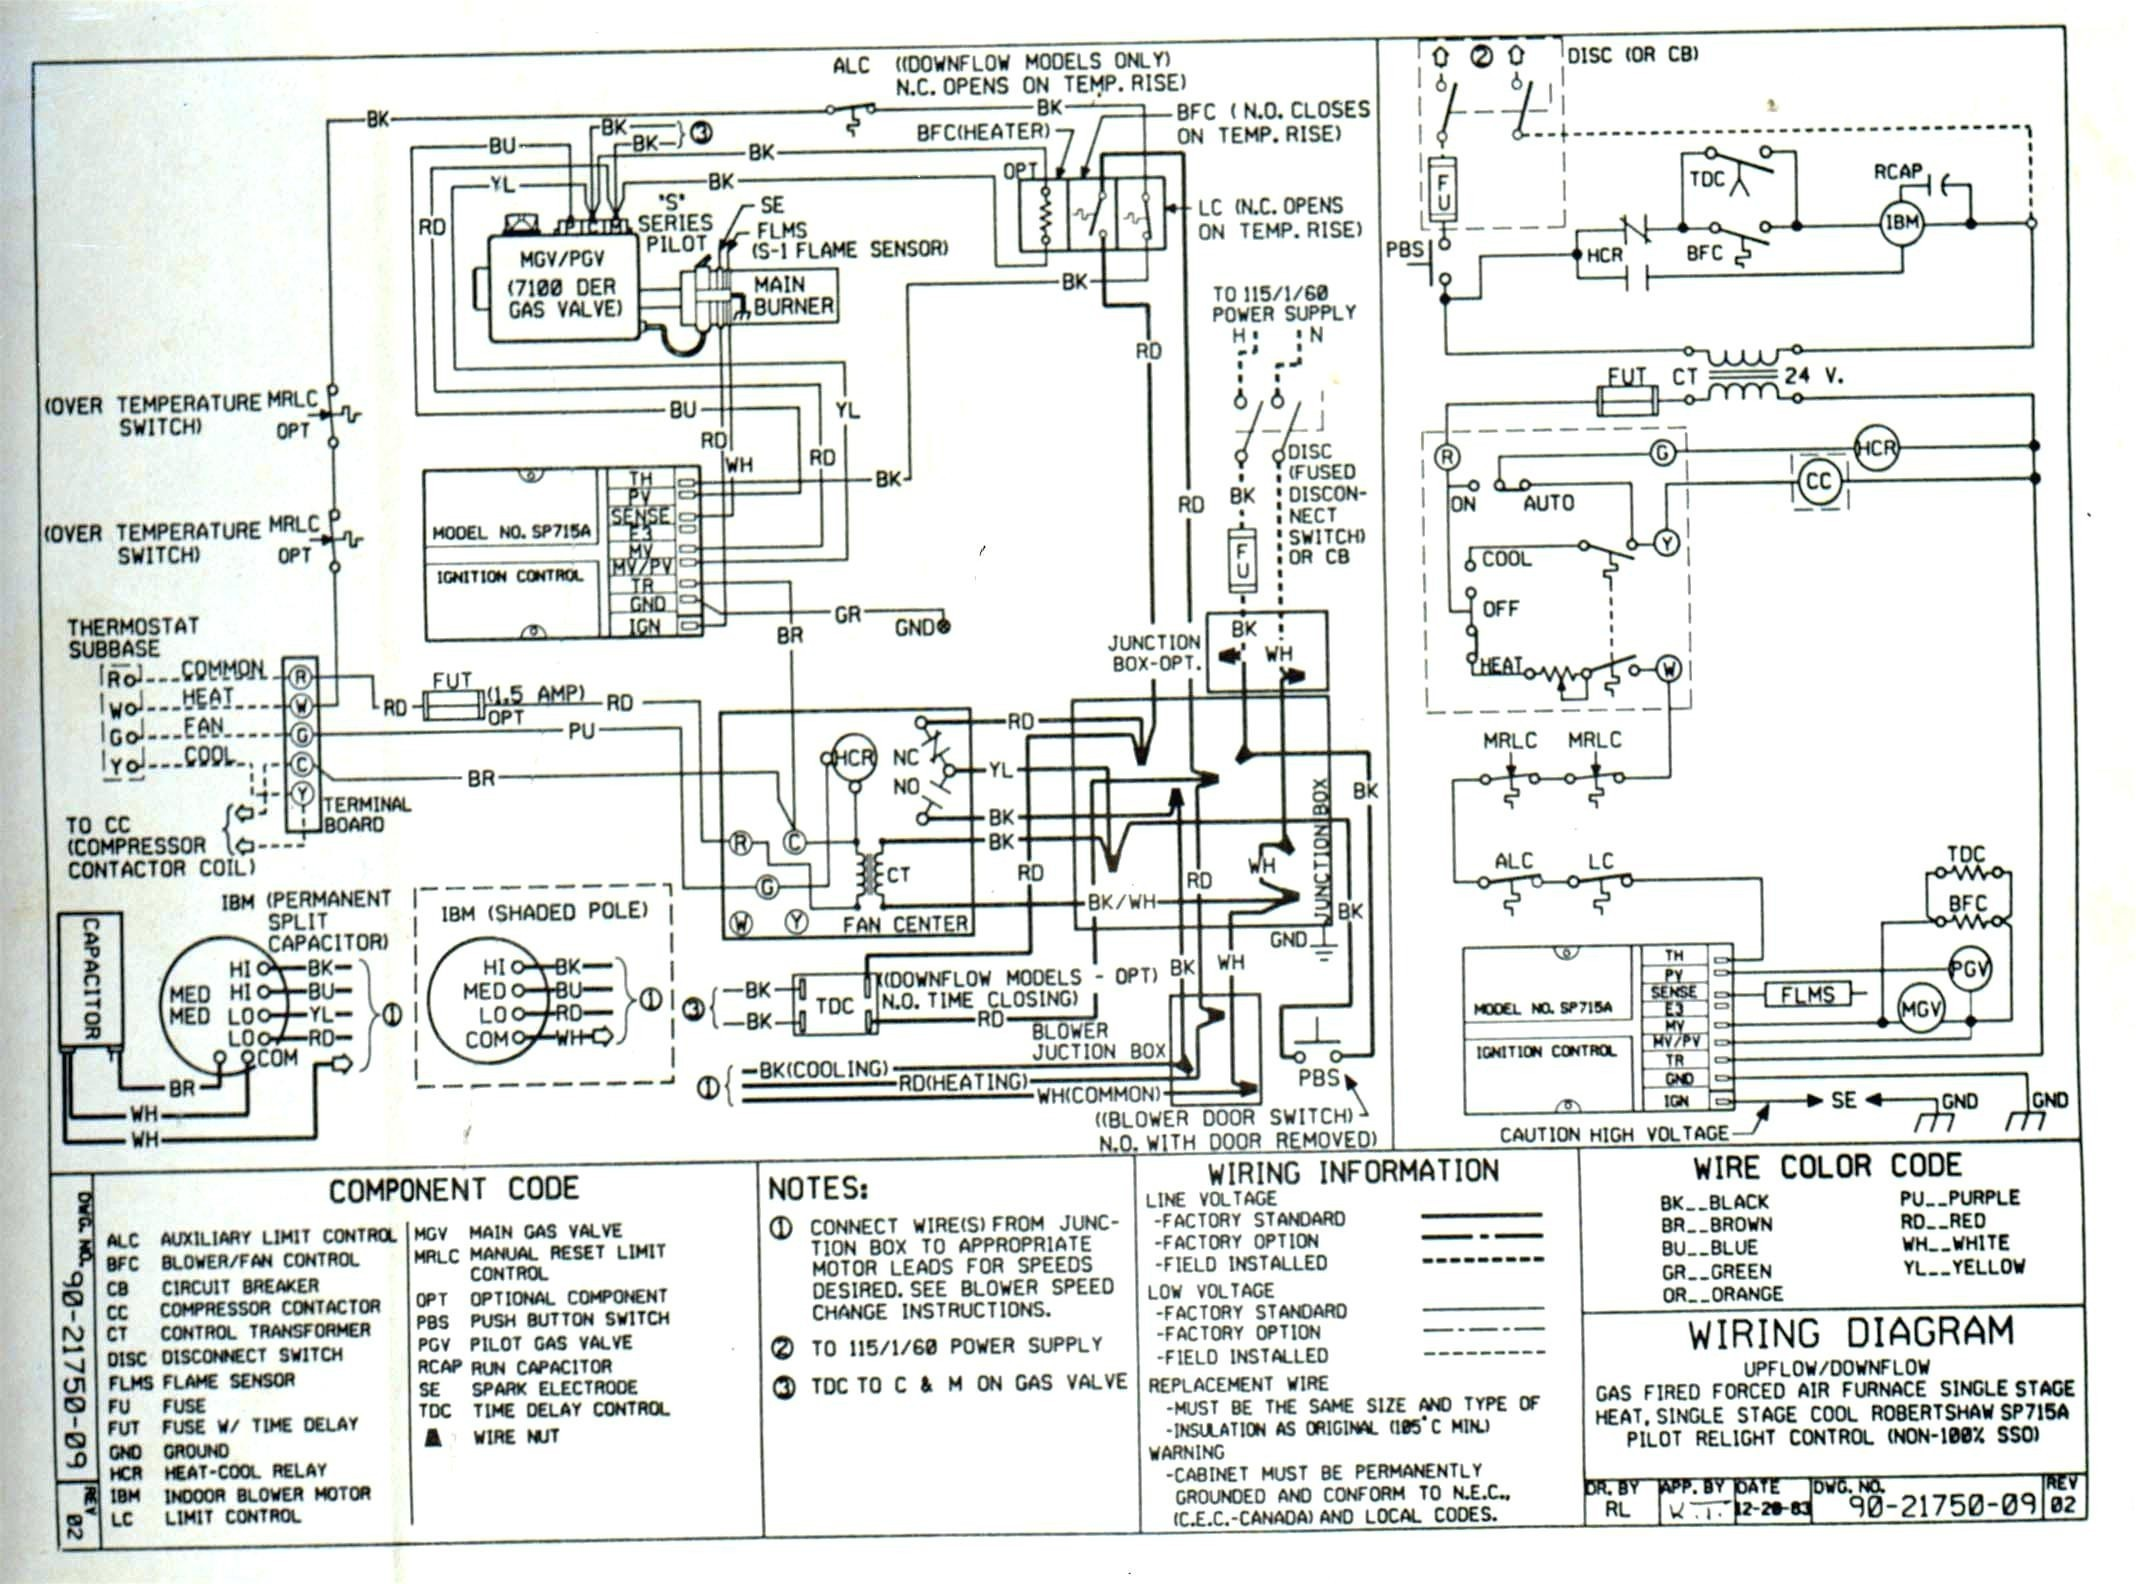 Bad Boy Mowers Wiring Diagram Wiring Diagram Centre Bad Boy Mower Wiring Diagram Bad Boy Wiring Diagram